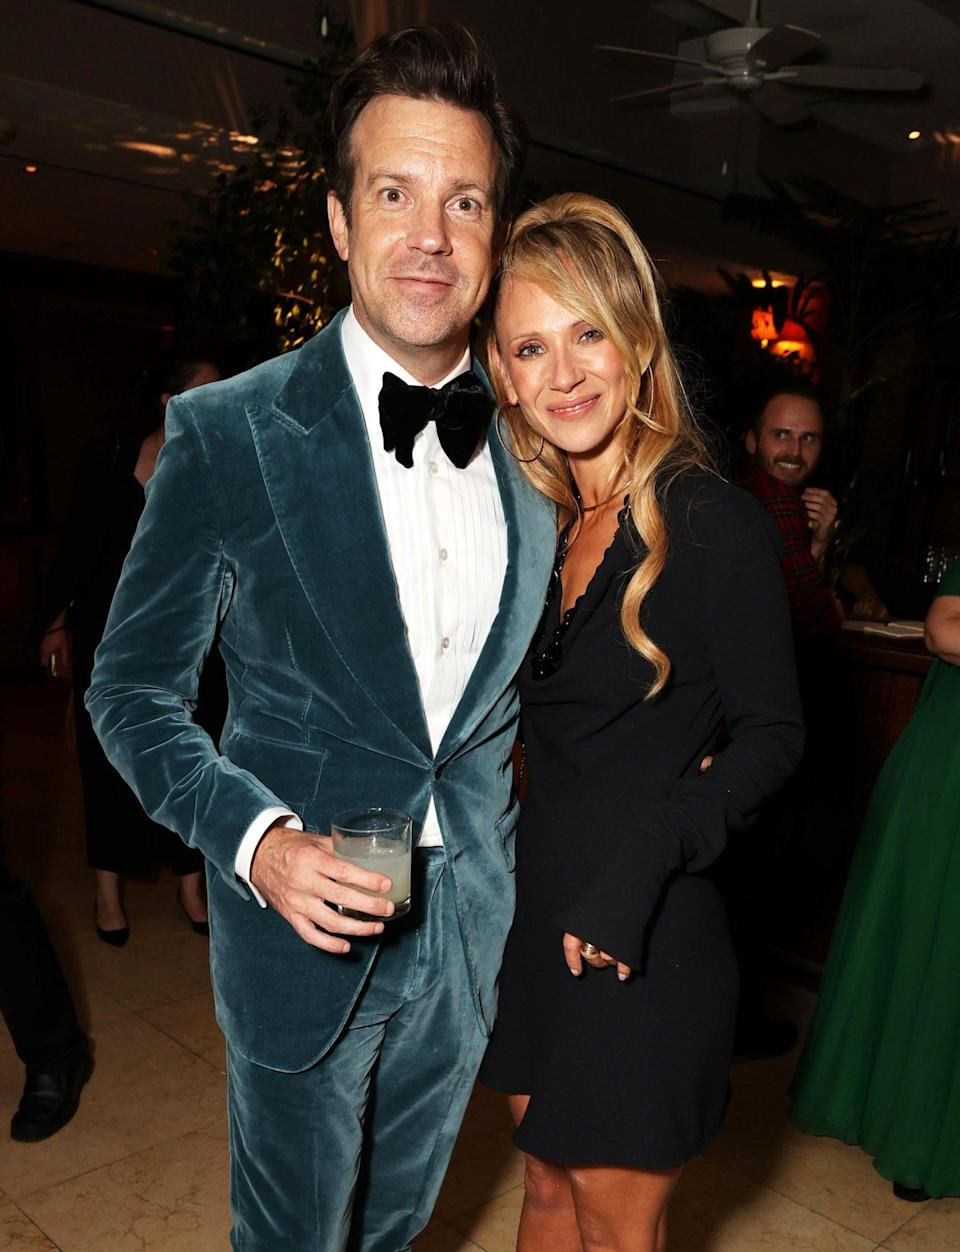 <p><em>Ted Lasso</em>'s Jason Sudeikis and Juno Temple celebrate their show's big night at the Emmy Awards with a small gathering at Sunset Tower in L.A. on Sept. 19.</p>